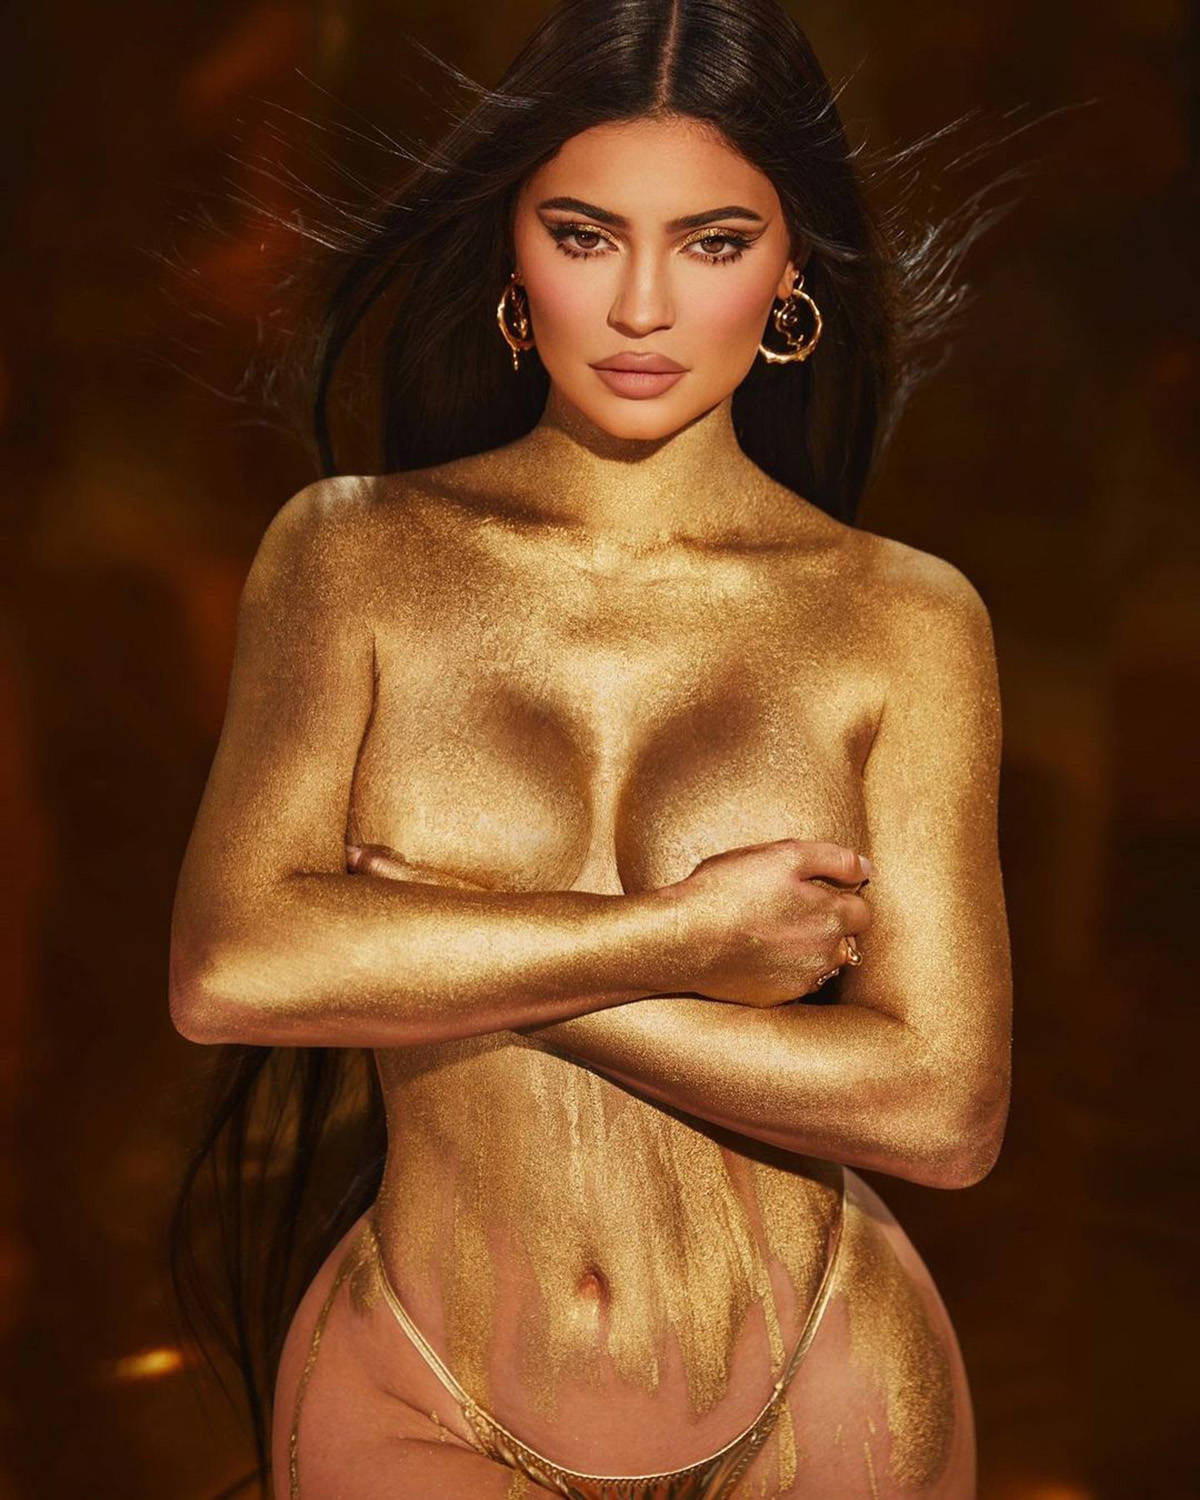 Makeup and skincare mogul Kylie Jenner shakes up the internet with her glamorous photos